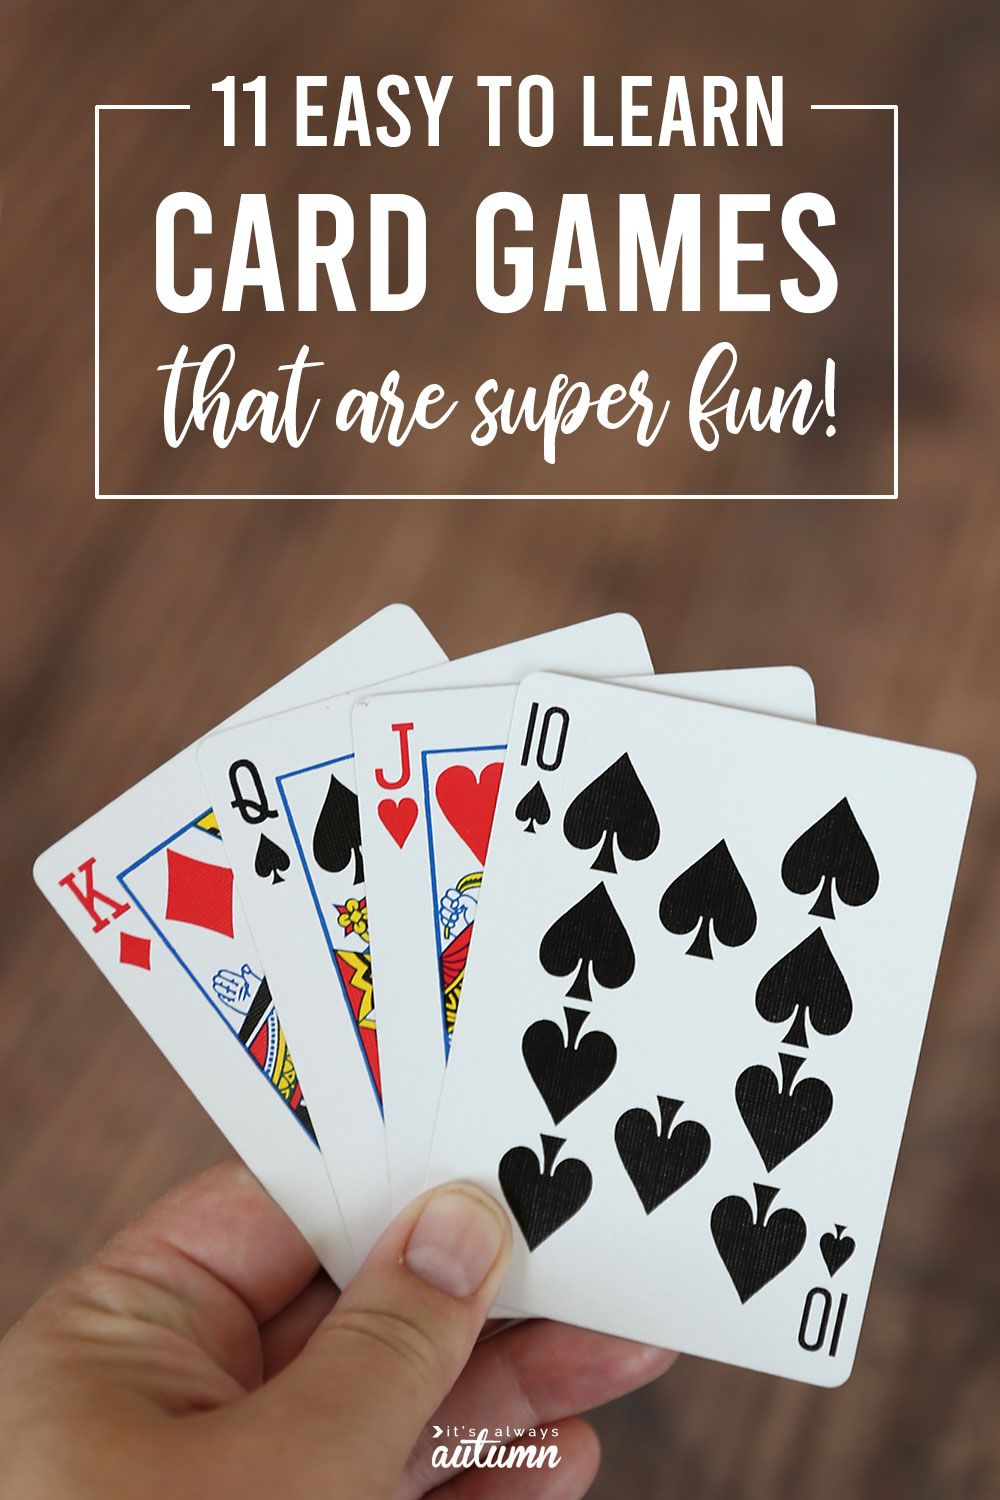 11 Fun Easy Cards Games For Kids And Adults With Images Card